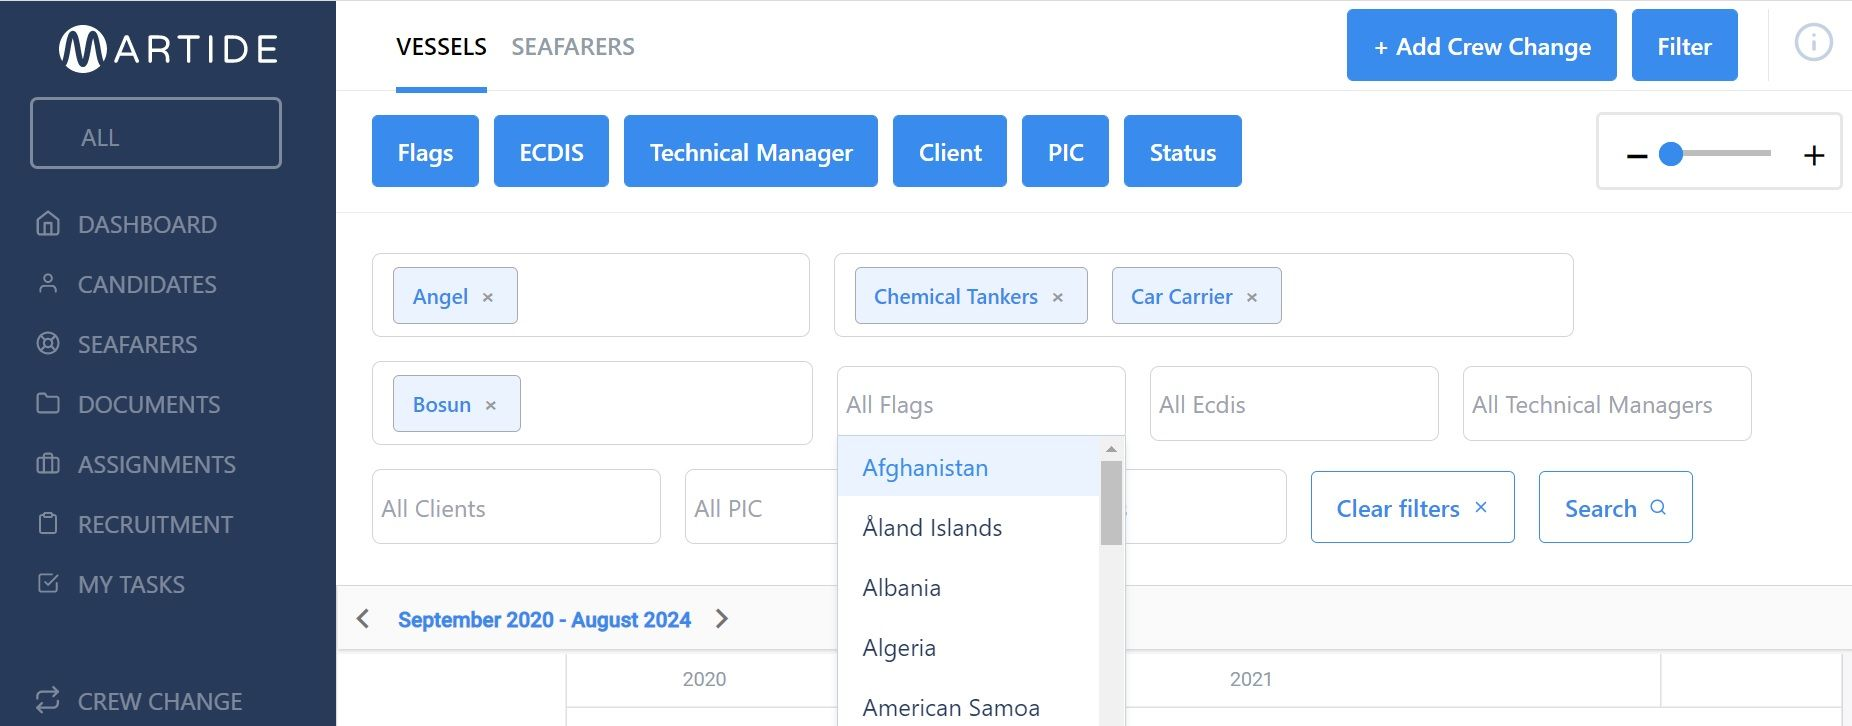 screenshot of the vessels page showing how to filter the search